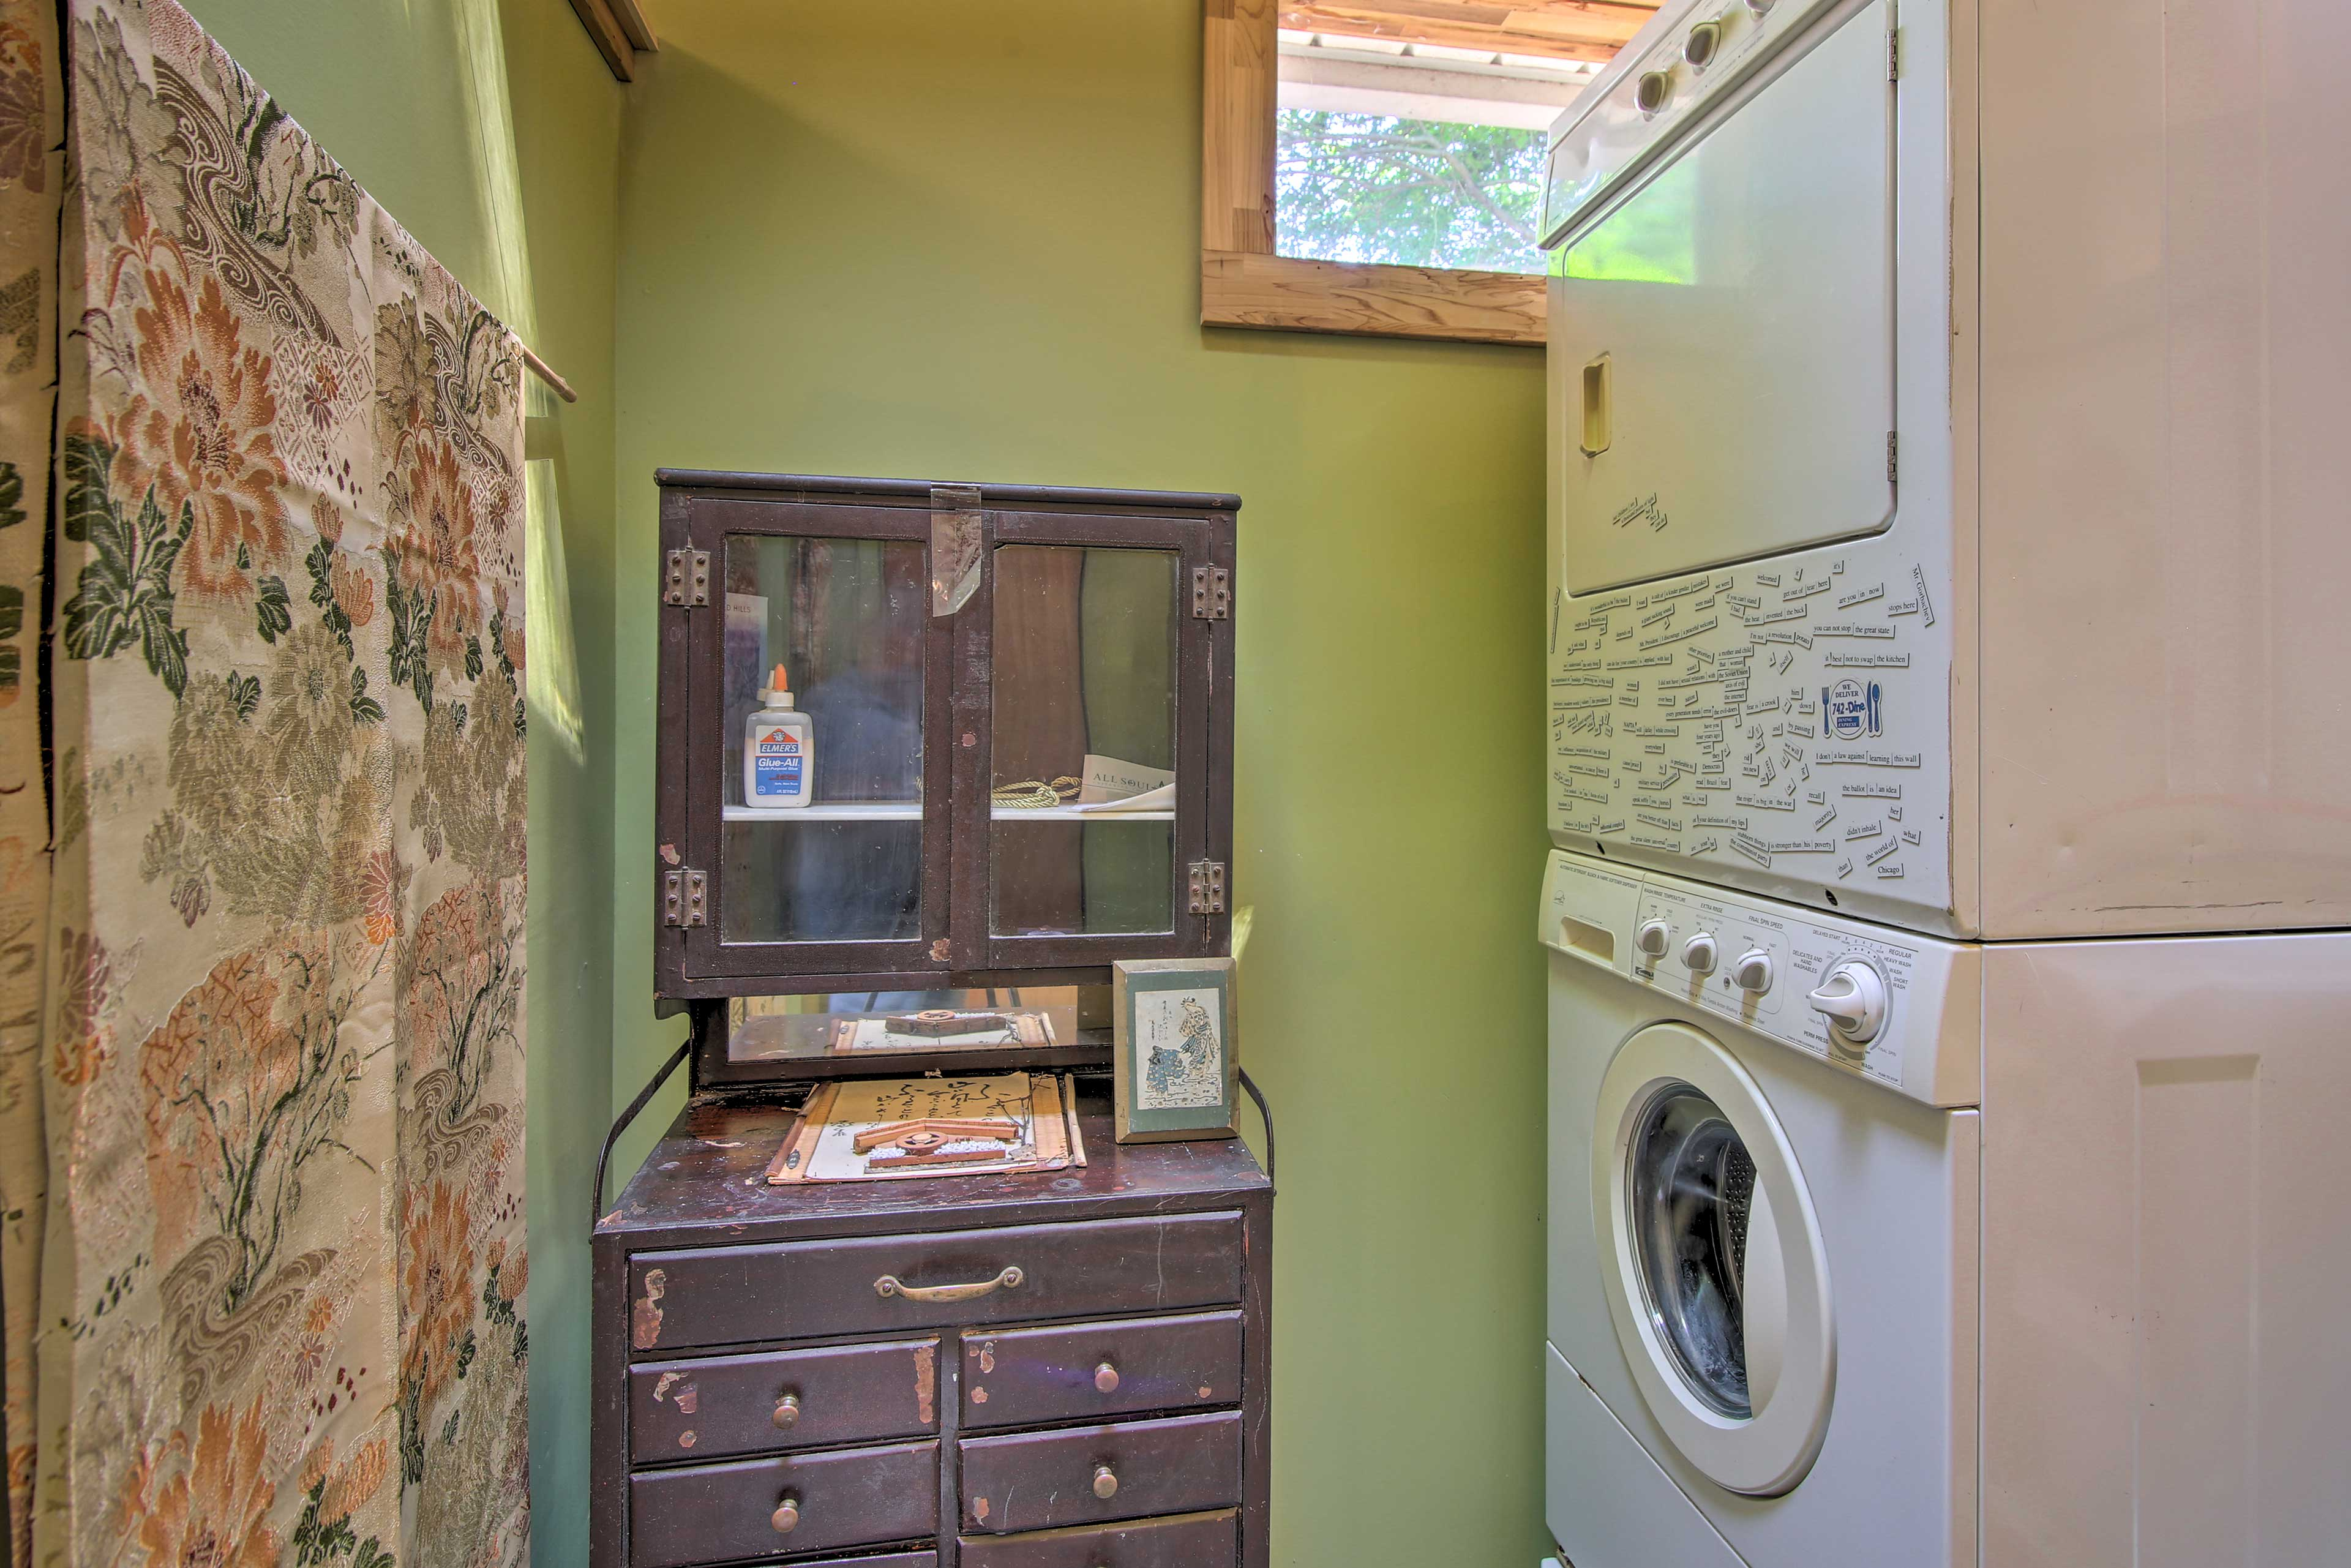 Utilize the laundry machines to keep your clothes fresh and clean.